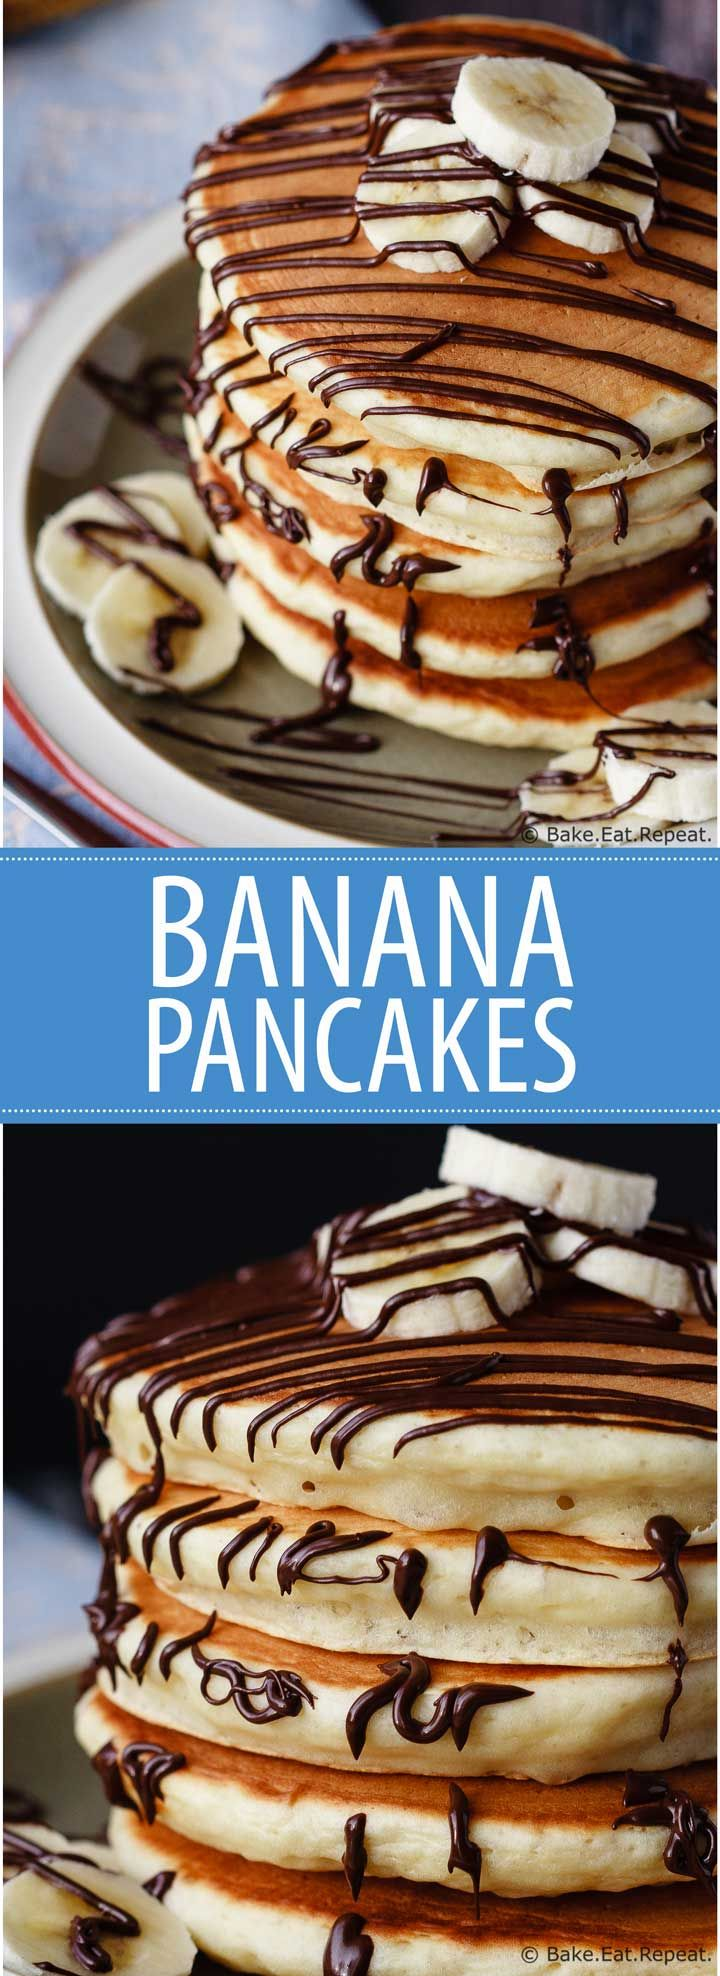 Banana Pancakes - Easy banana pancakes that mix up quickly and are a fantastic change from the usual buttermilk pancakes.